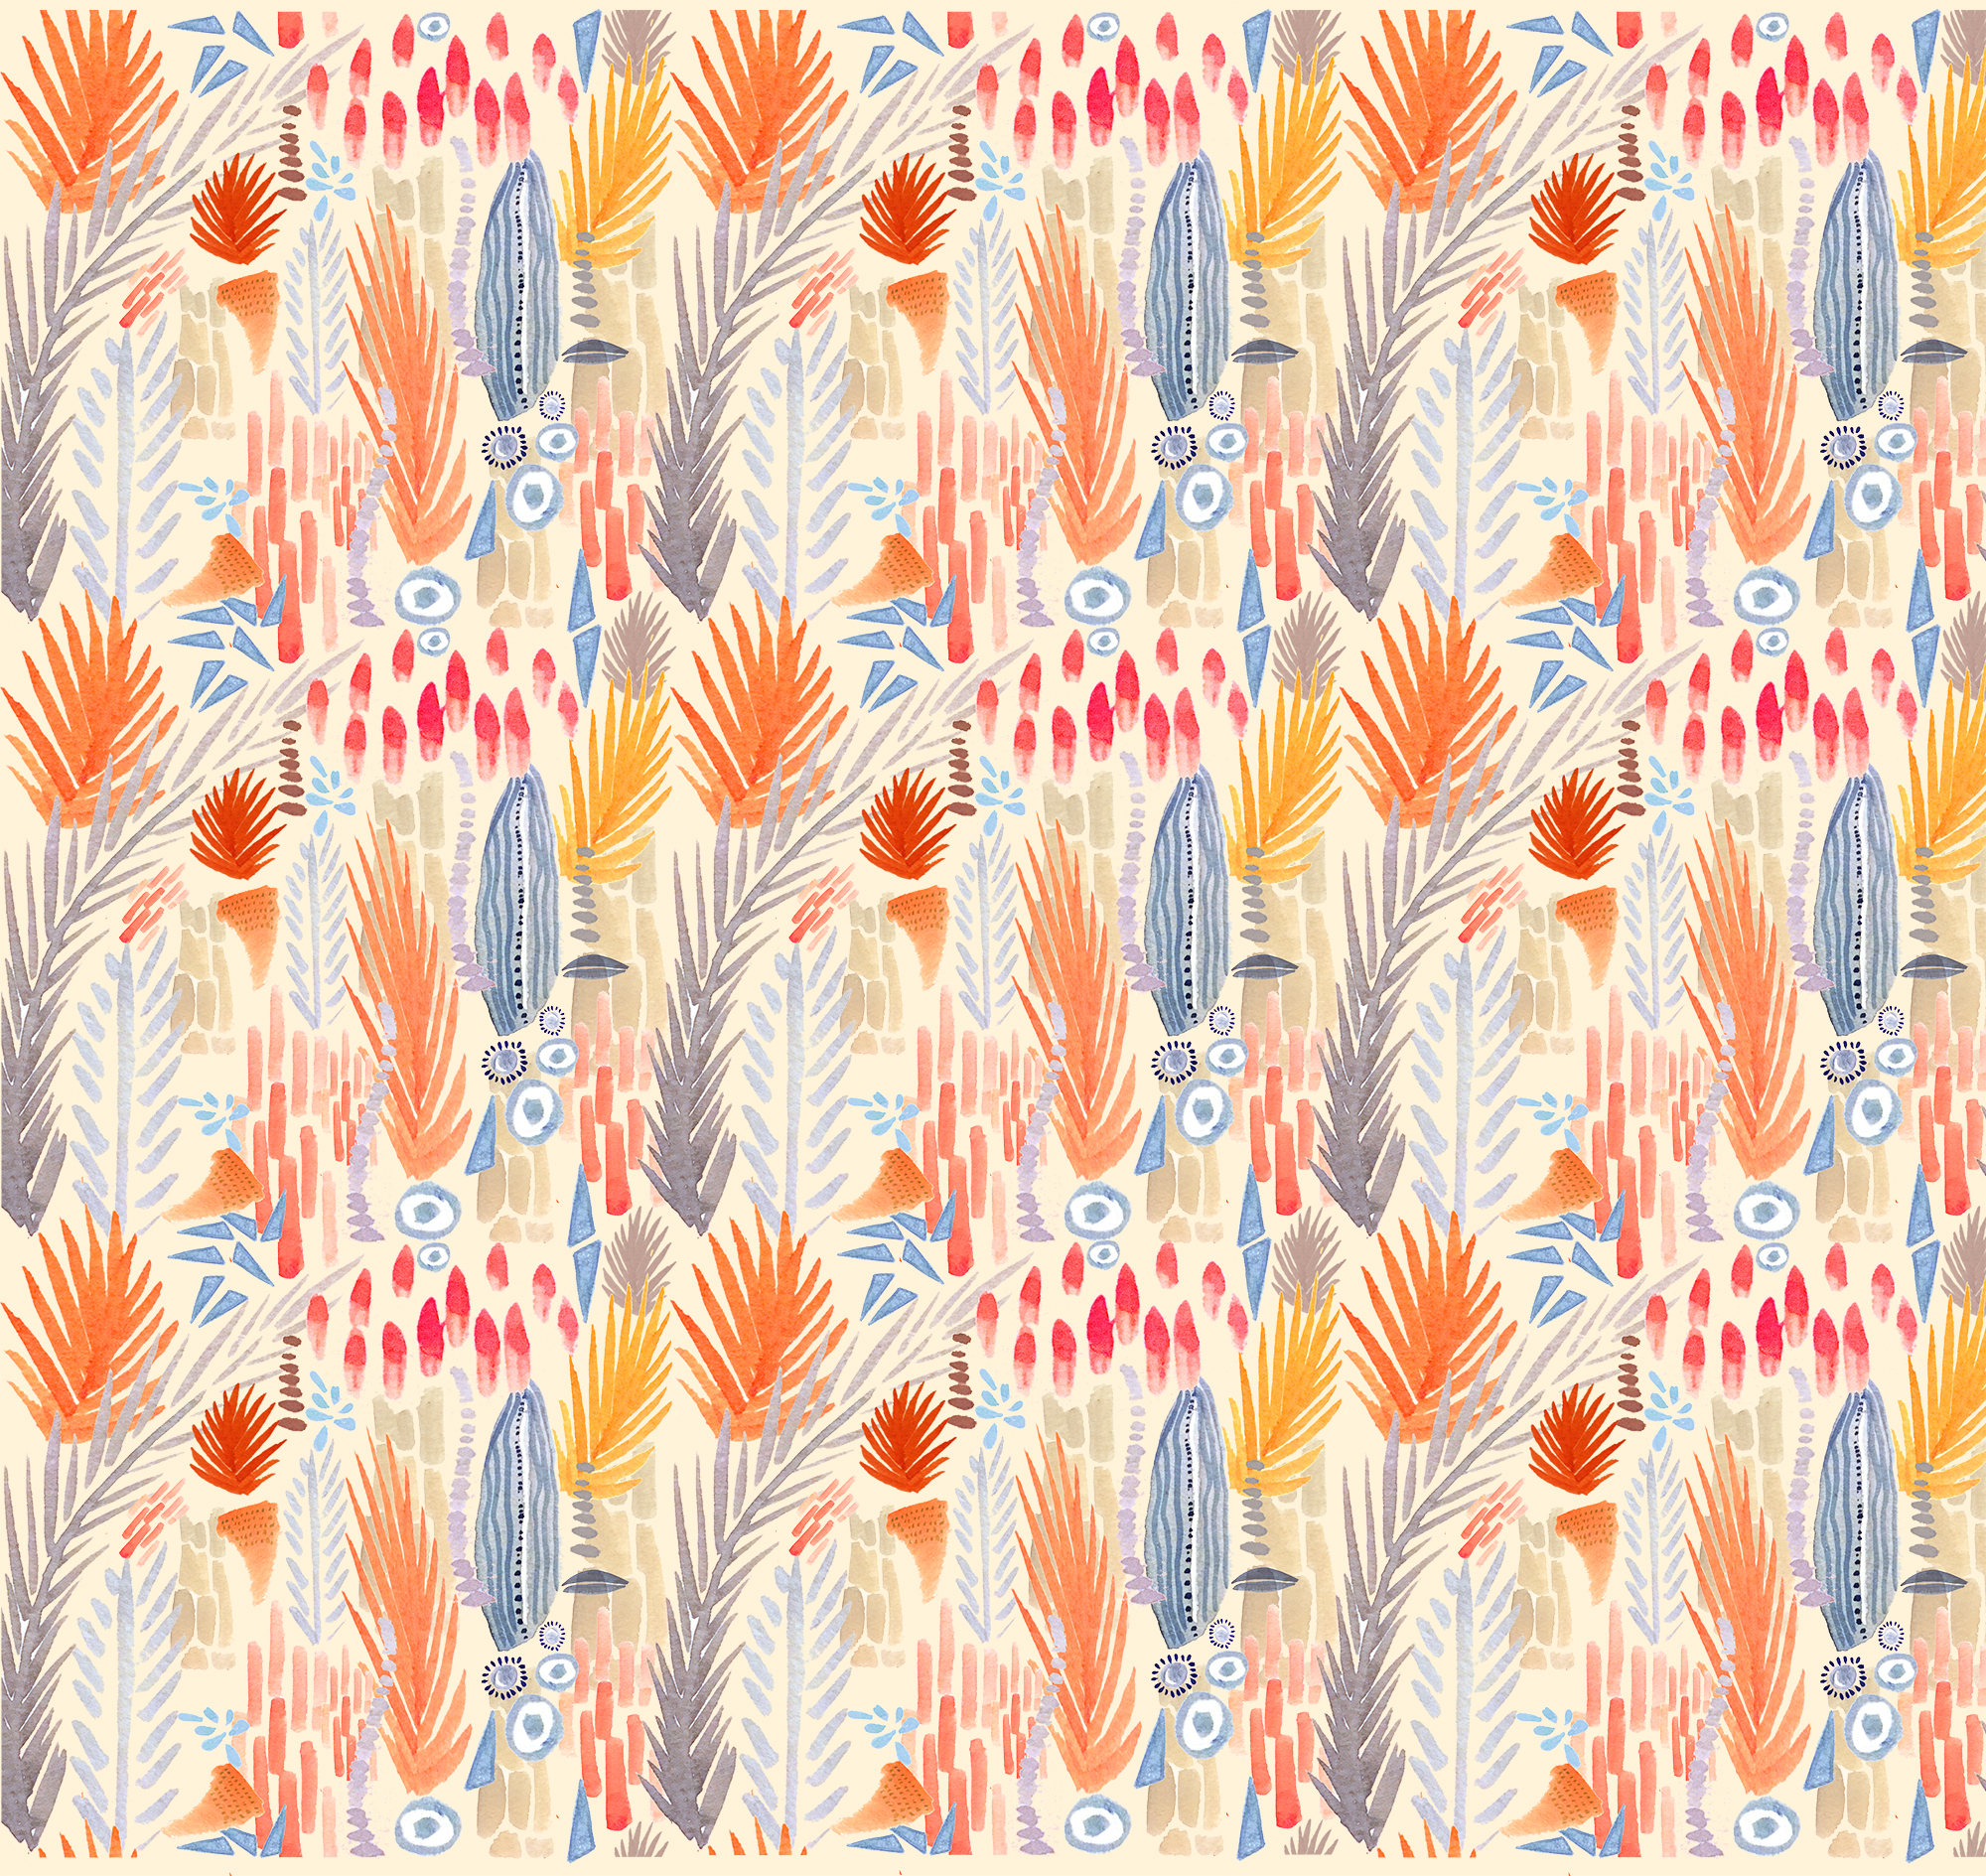 Turn Your Sketchbook Doodles Into a Digital Repeating Pattern